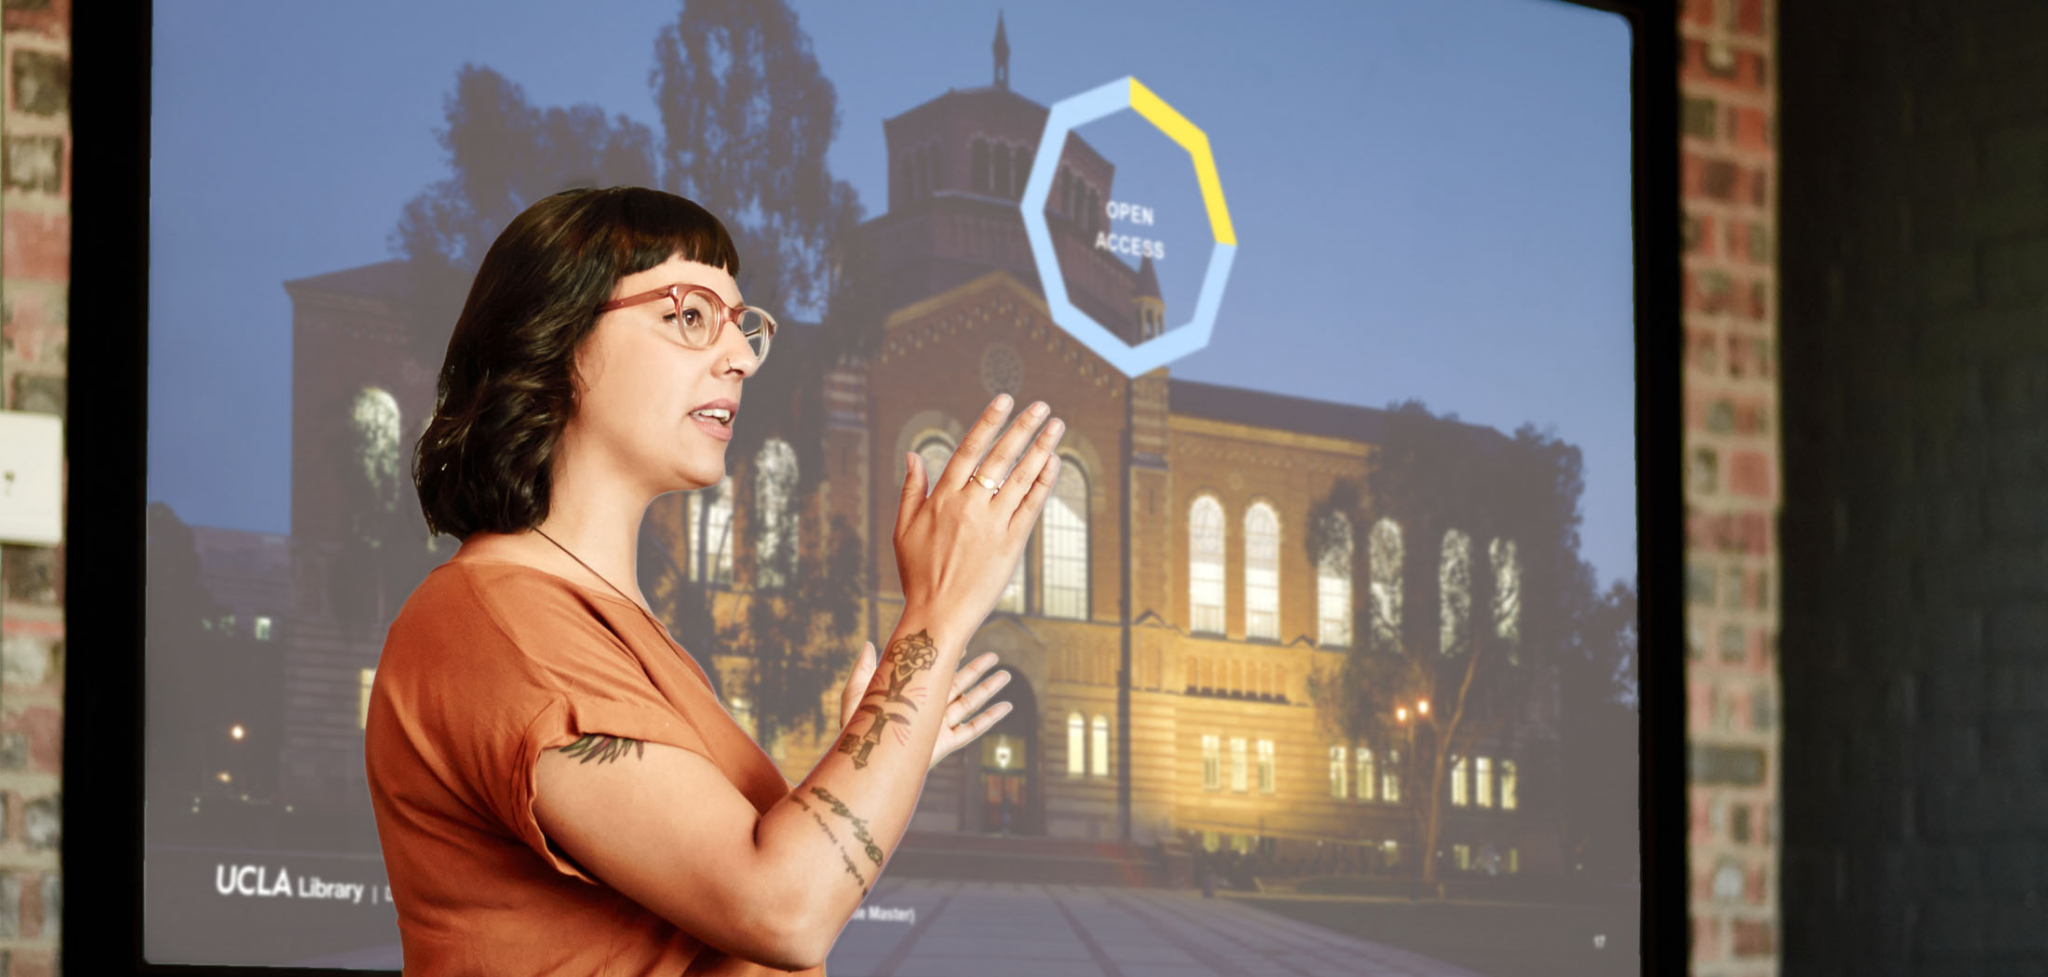 UCLA Library Rebranding PowerPoint Presentation